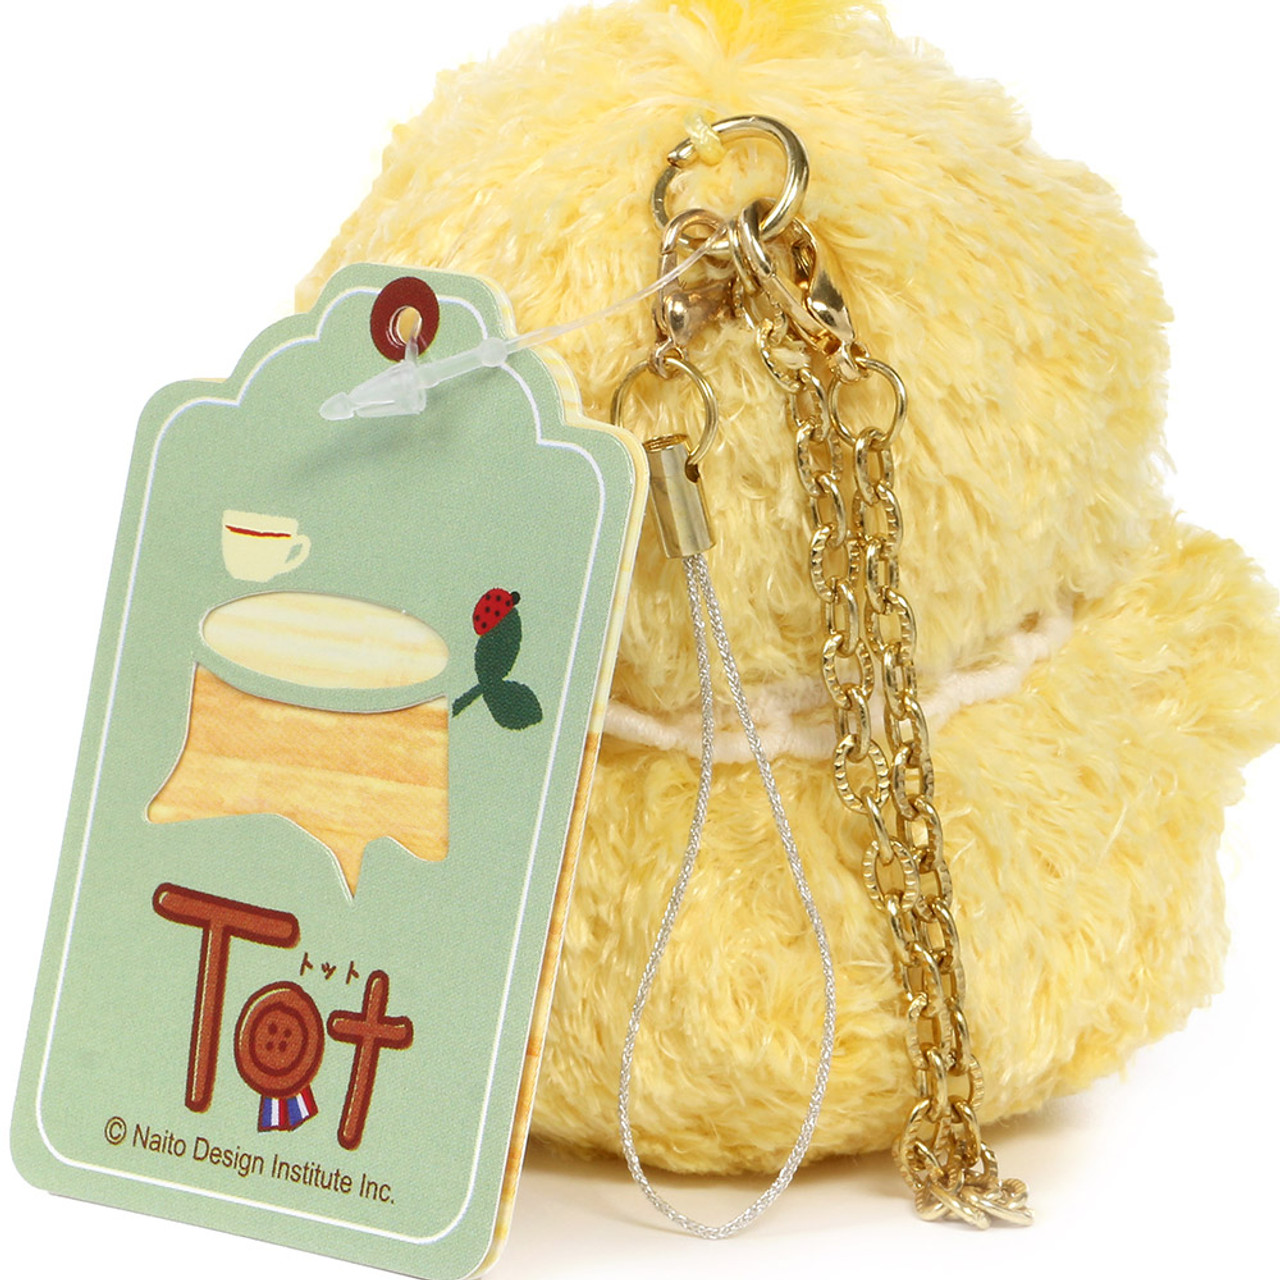 Naito Design Tot Series Chick Doll Charms - Chico ( Chains View )